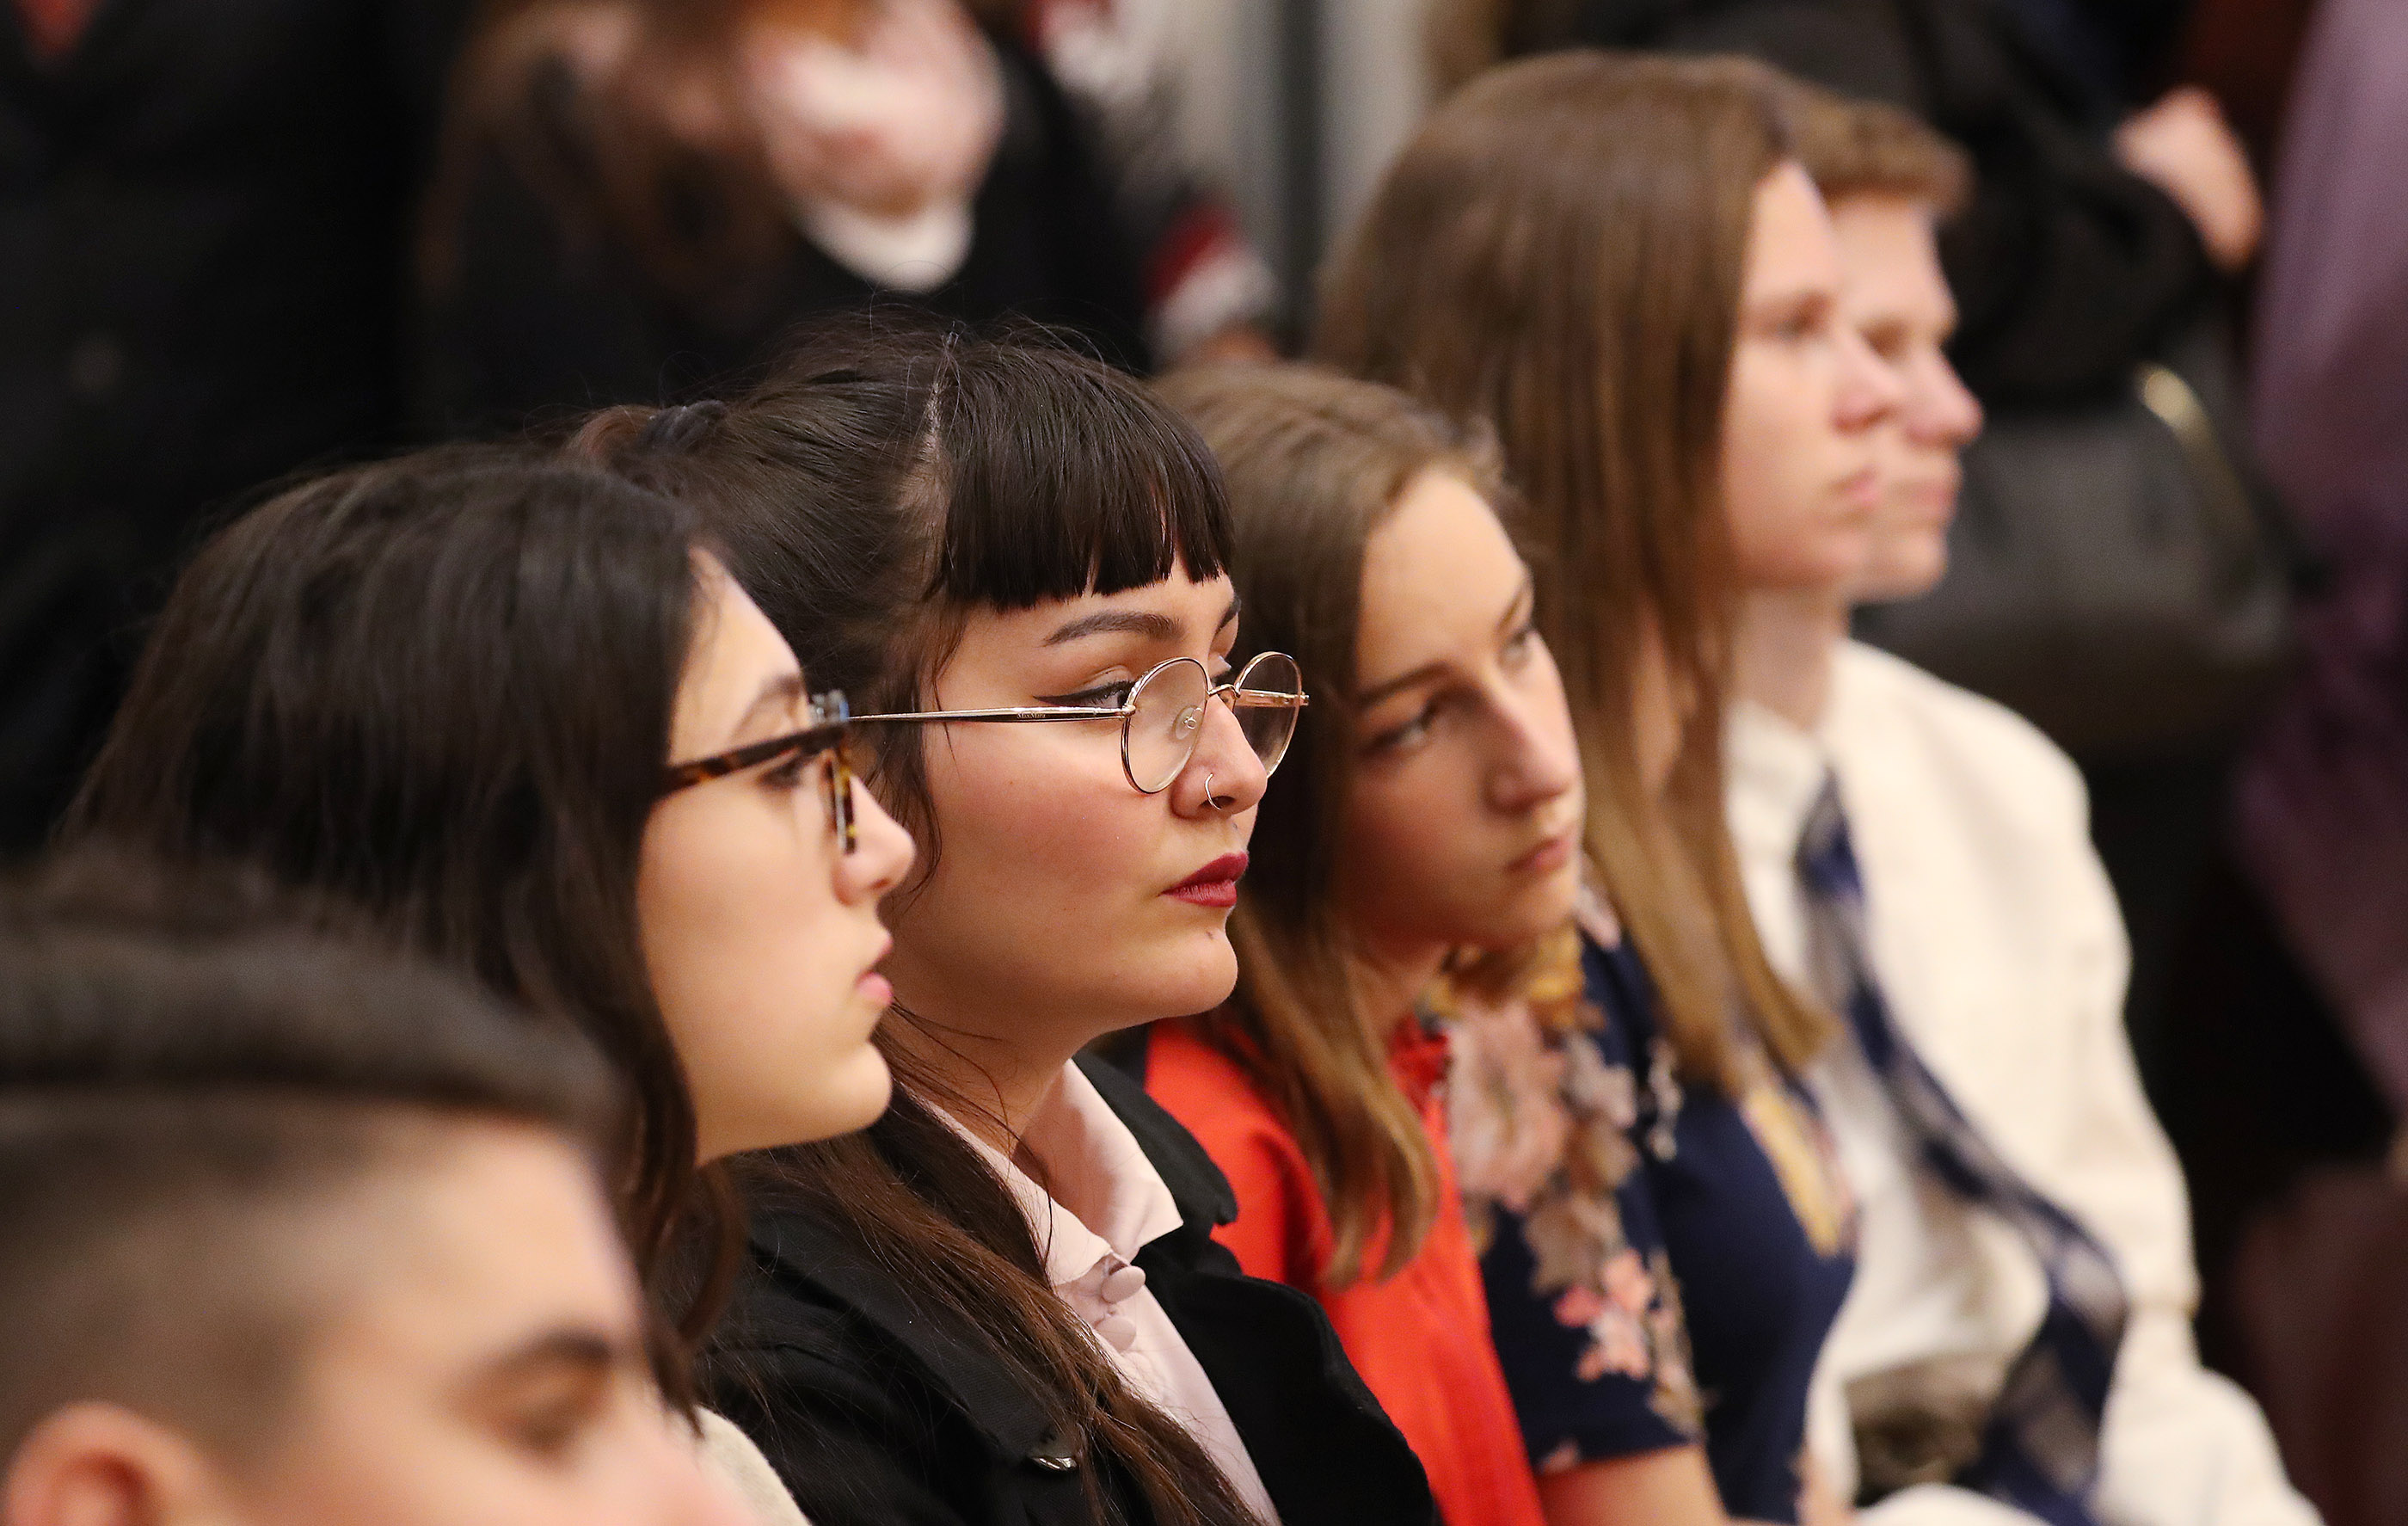 Attendees listen to President Russell M. Nelson of The Church of Jesus Christ of Latter-day Saints during a devotional in Rome, Italy, on Thursday, March 7, 2019.